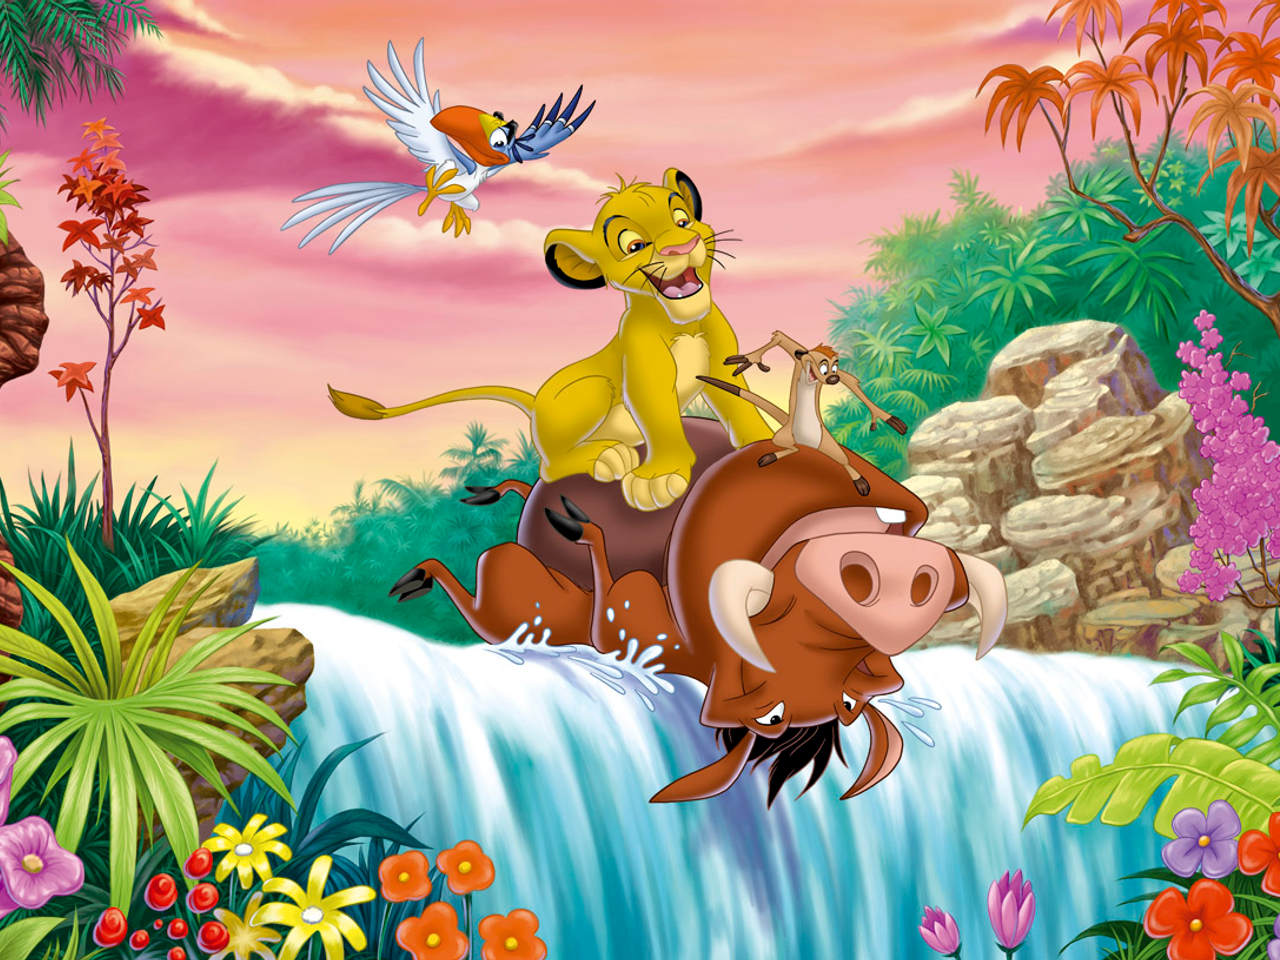 The Lion King walt disney characters 39504555 1280 960